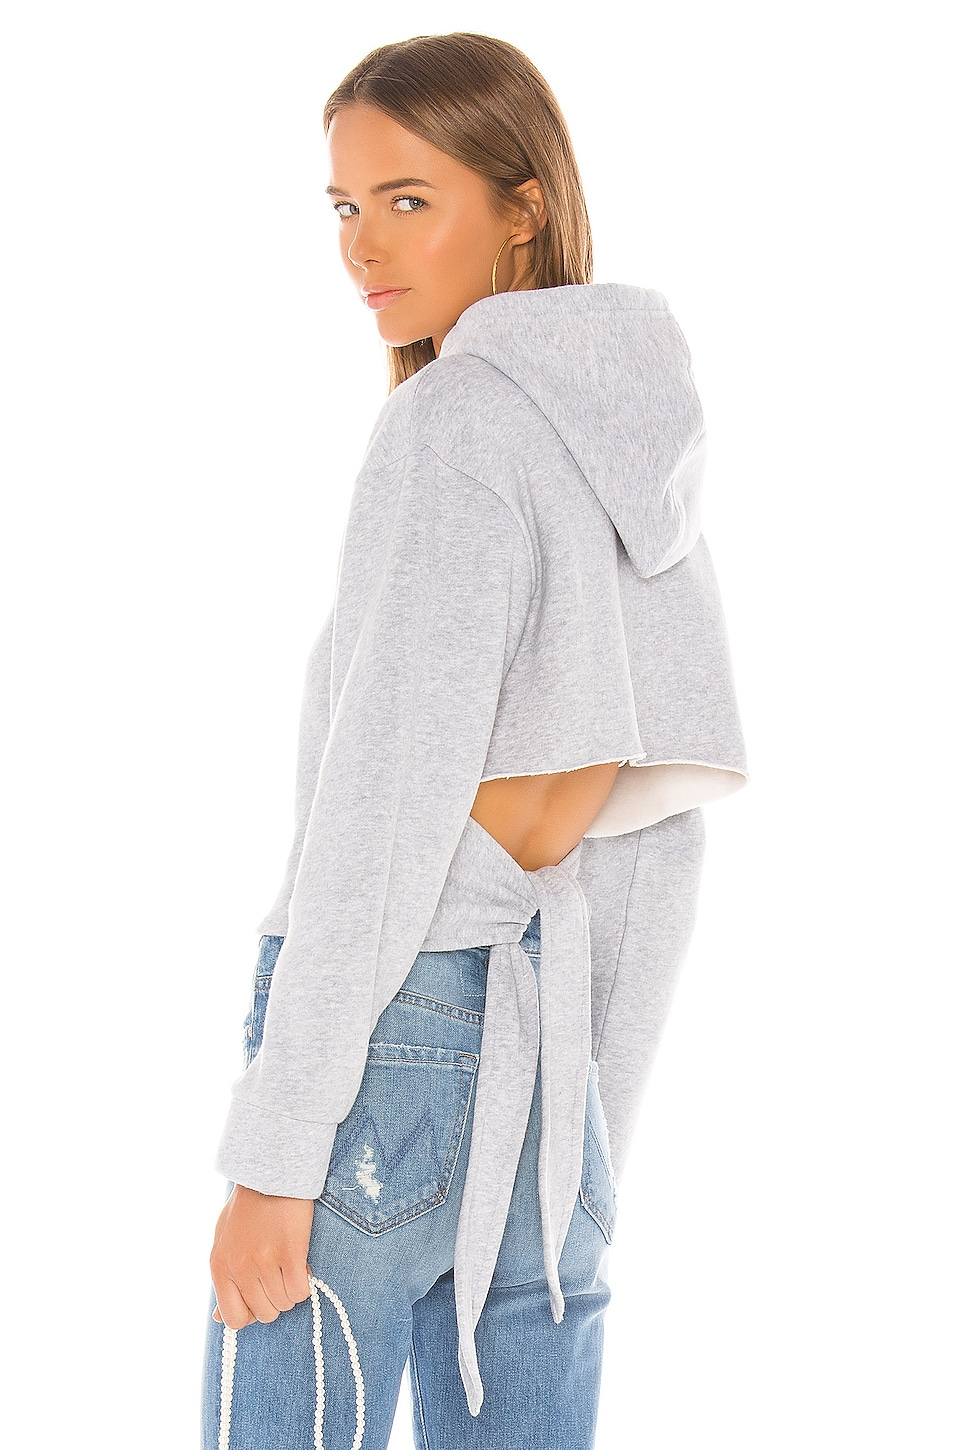 LPA Hadley Sweatshirt in Heather Gray